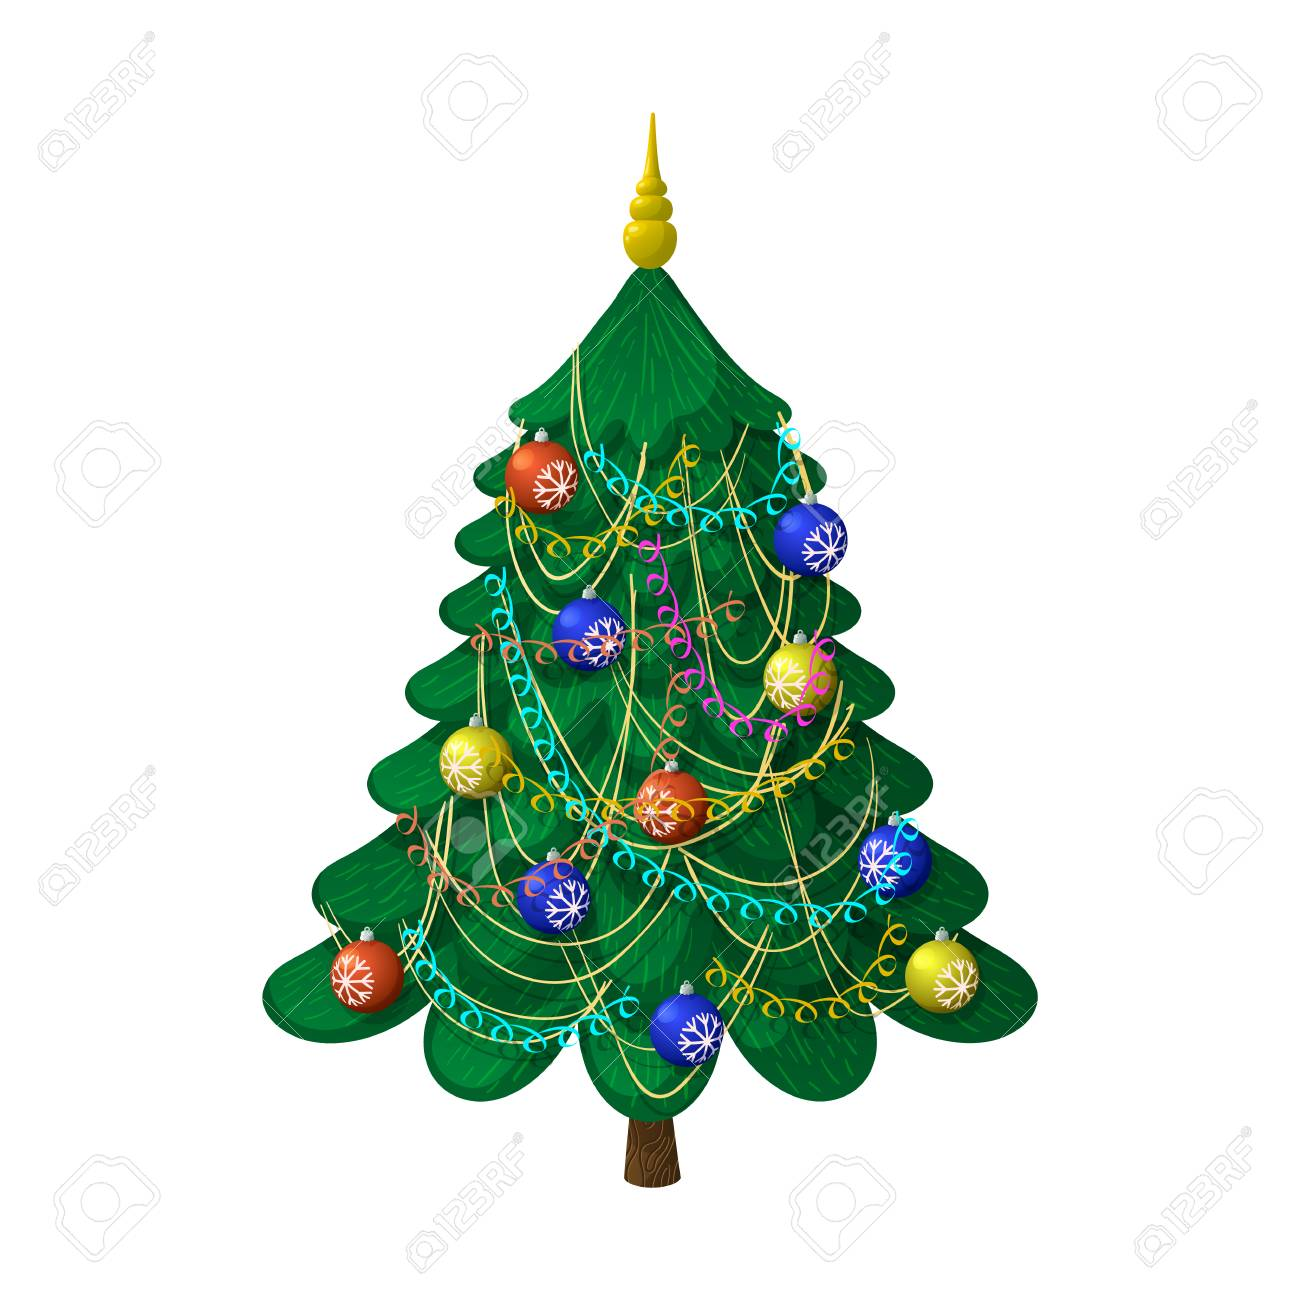 Christmas tree with decorations. On a white background, cartoon,..